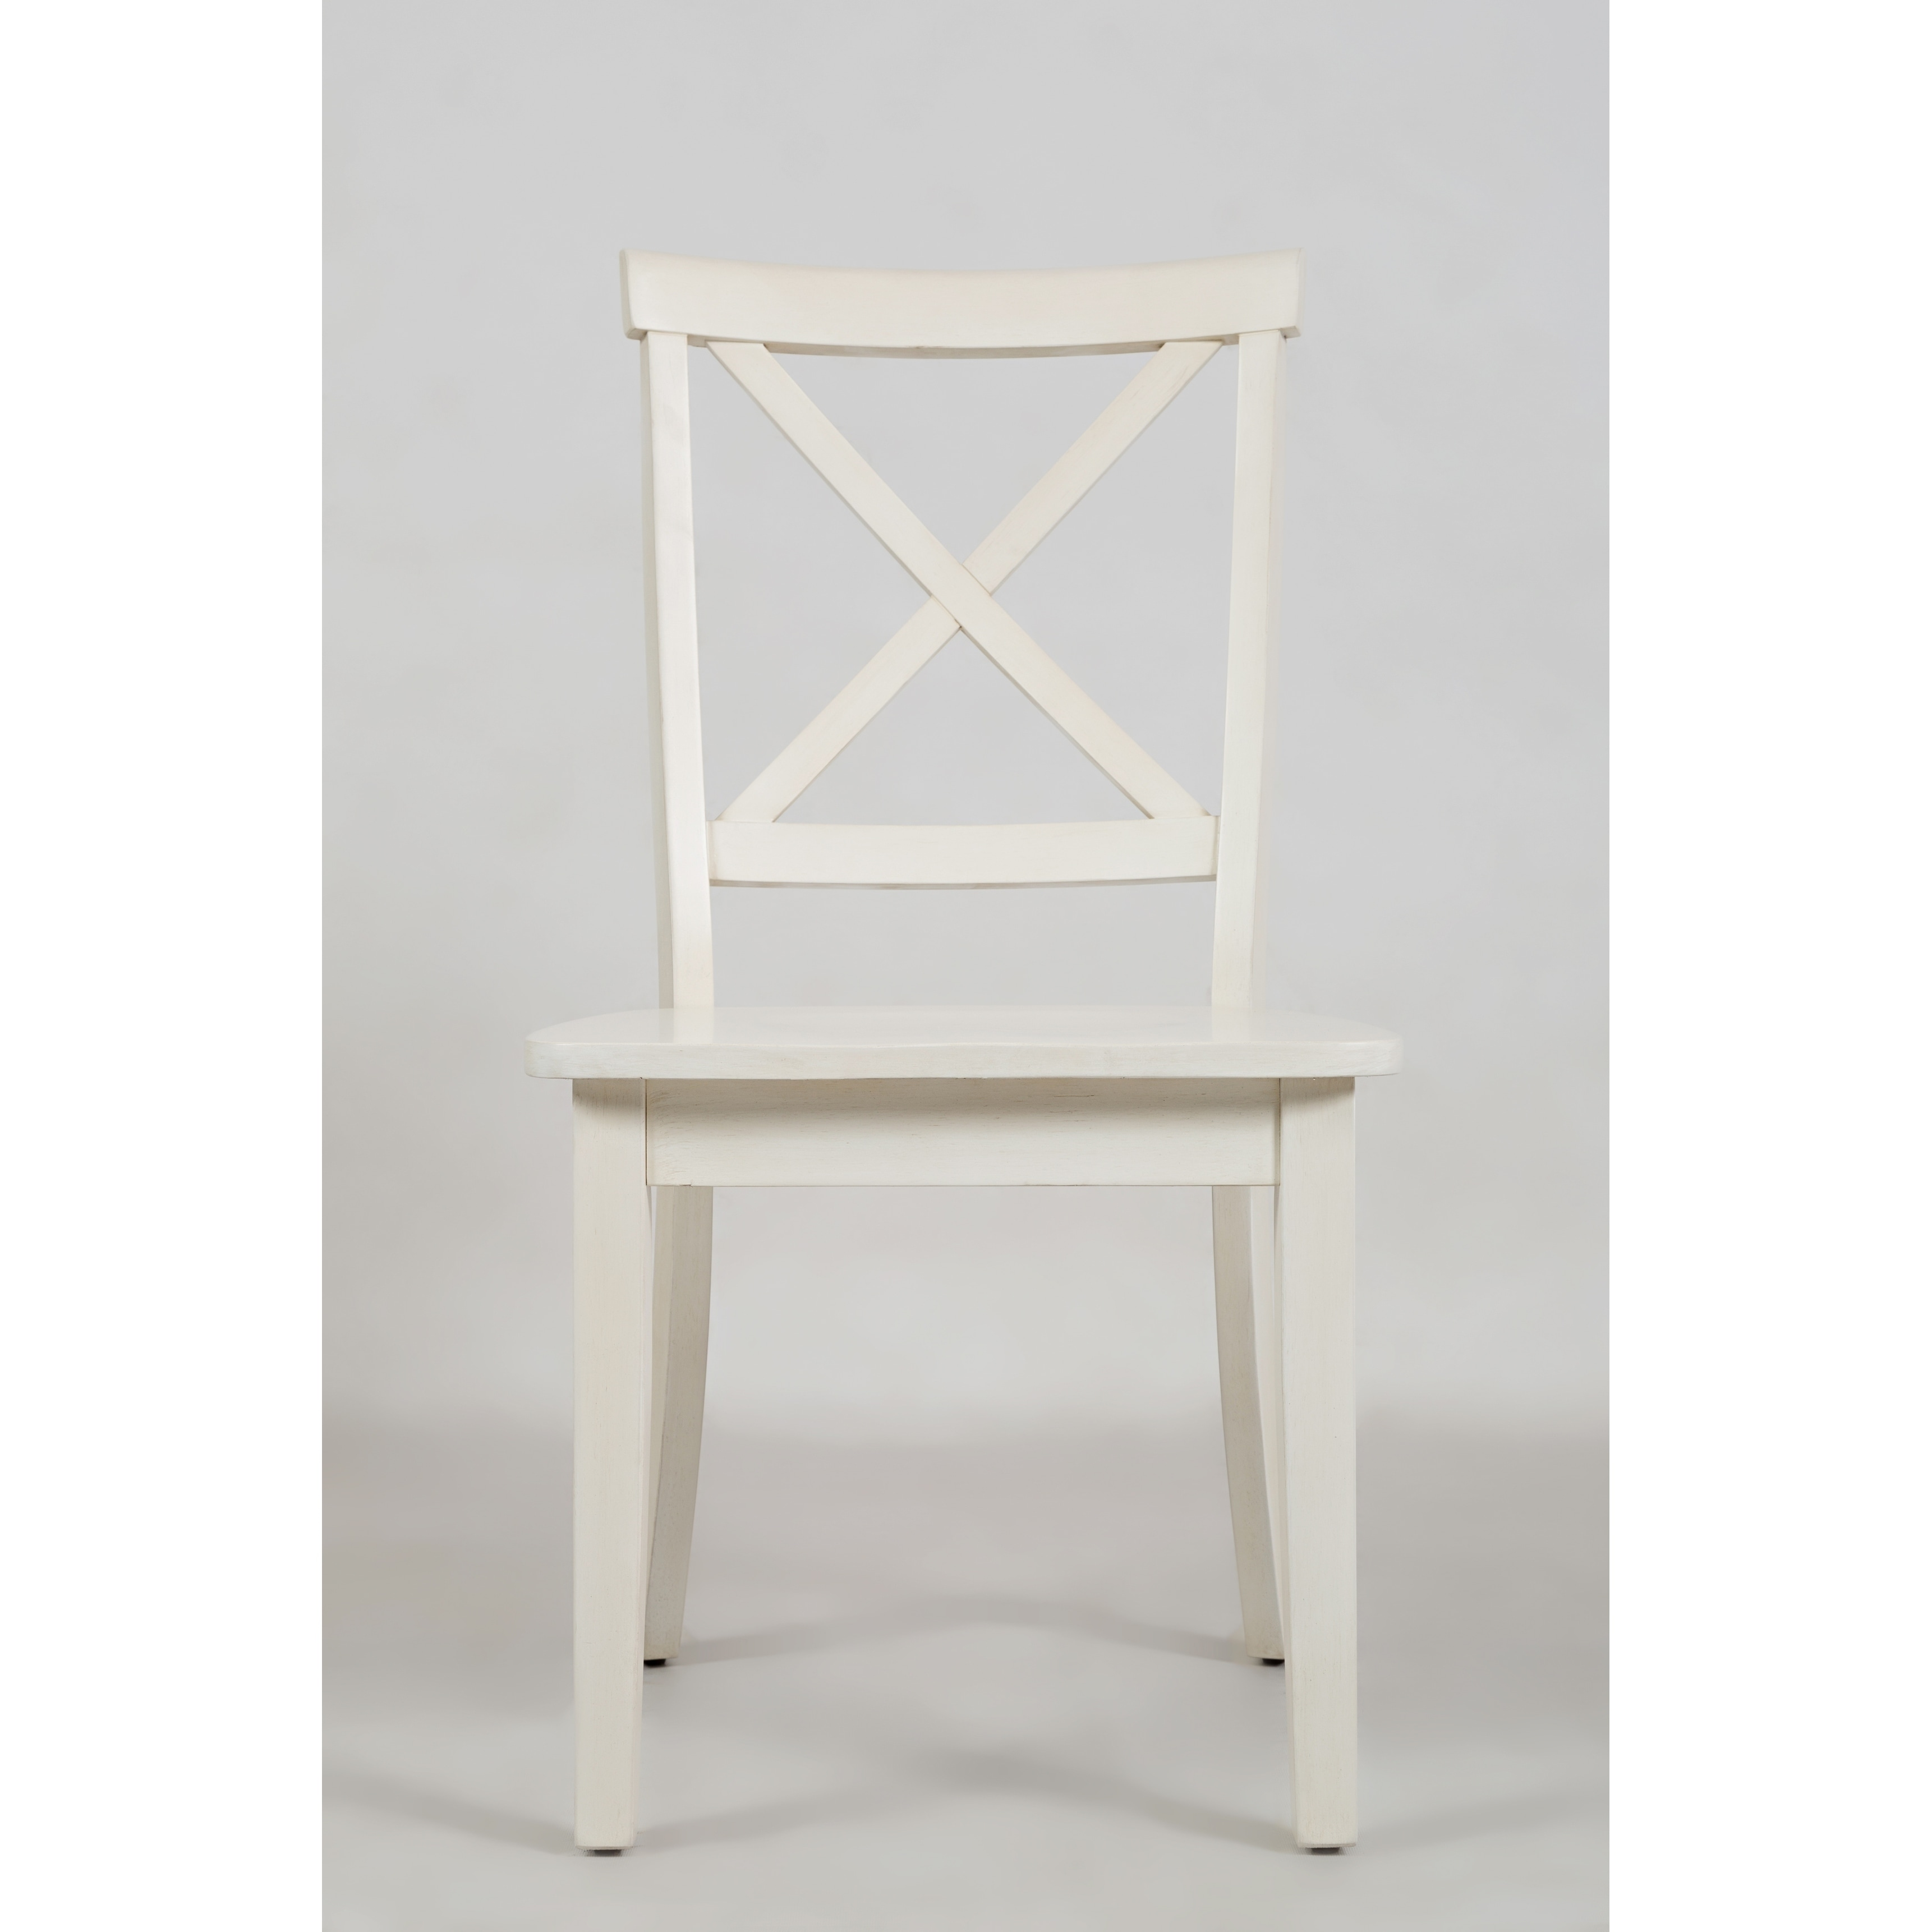 Wooden Dining Chair With X Cross Back Design Set Of Two White